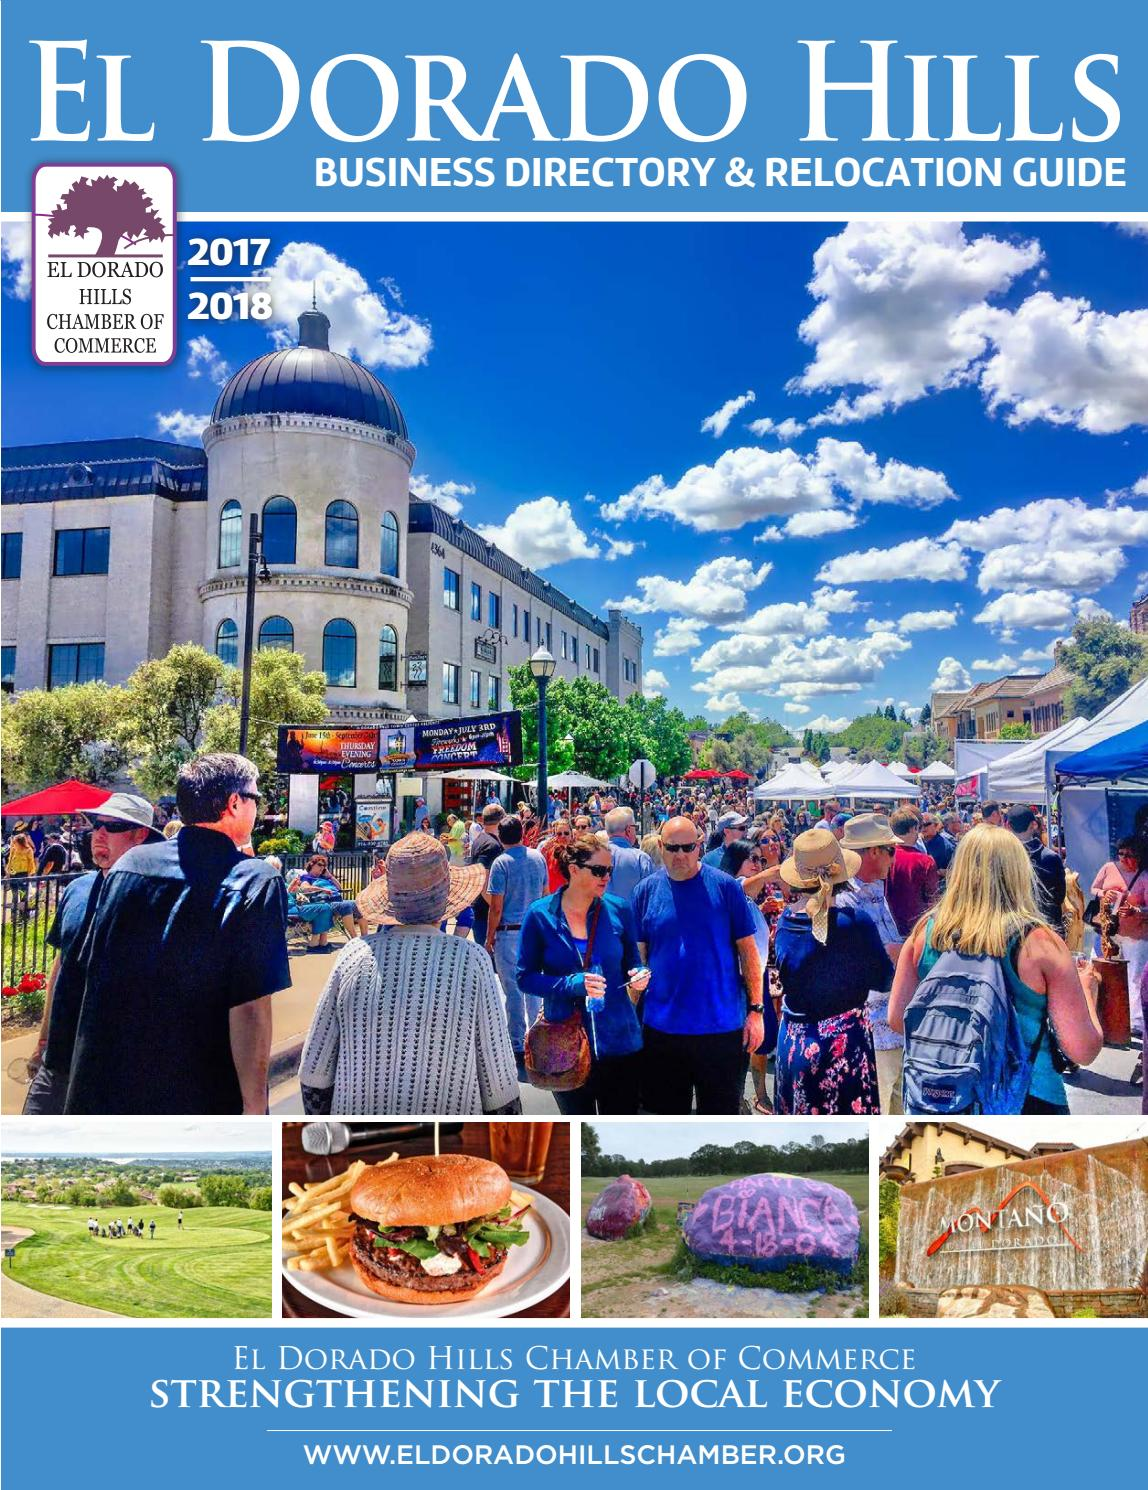 El Dorado Hills Business Directory & Relocation Guide 2017